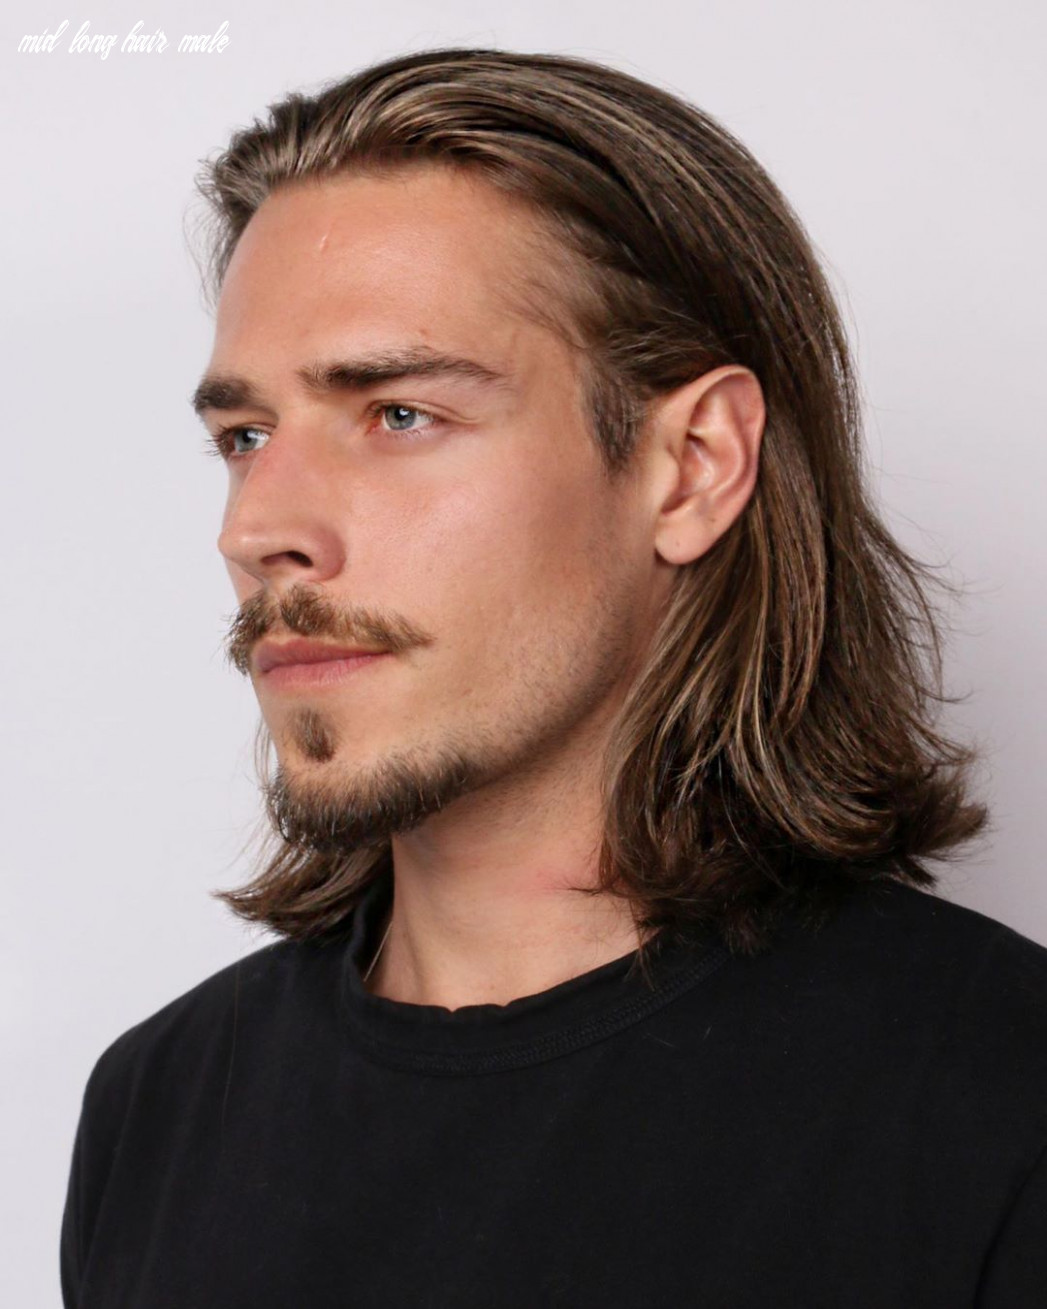 11 Men with Long Hair: All the Looks You Need to Know